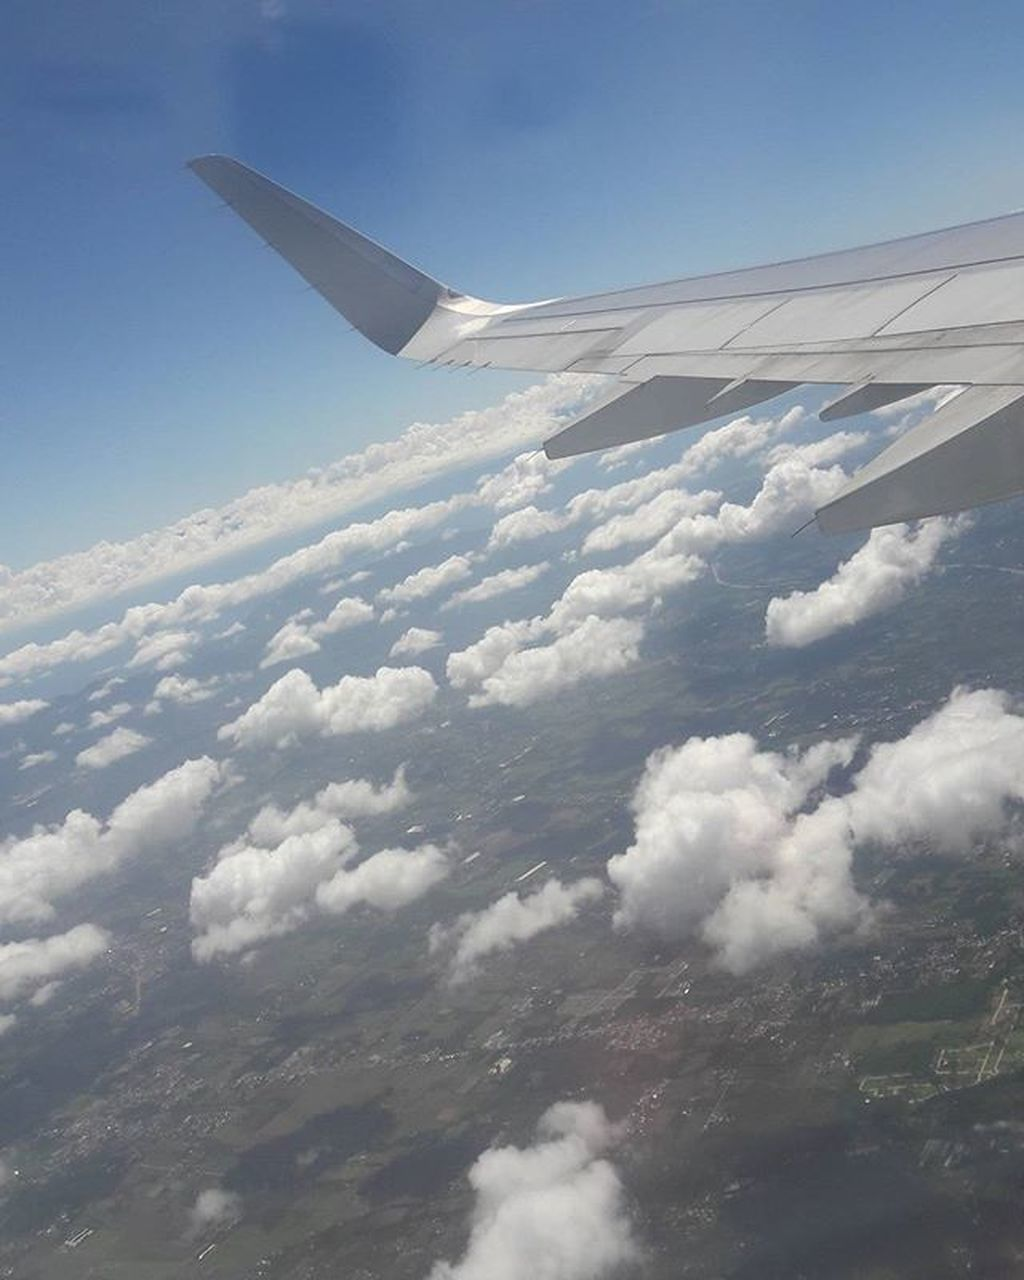 airplane, flying, transportation, cloud - sky, nature, sky, day, white color, aerial view, no people, airplane wing, journey, air vehicle, scenics, blue, beauty in nature, outdoors, mid-air, tranquility, aircraft wing